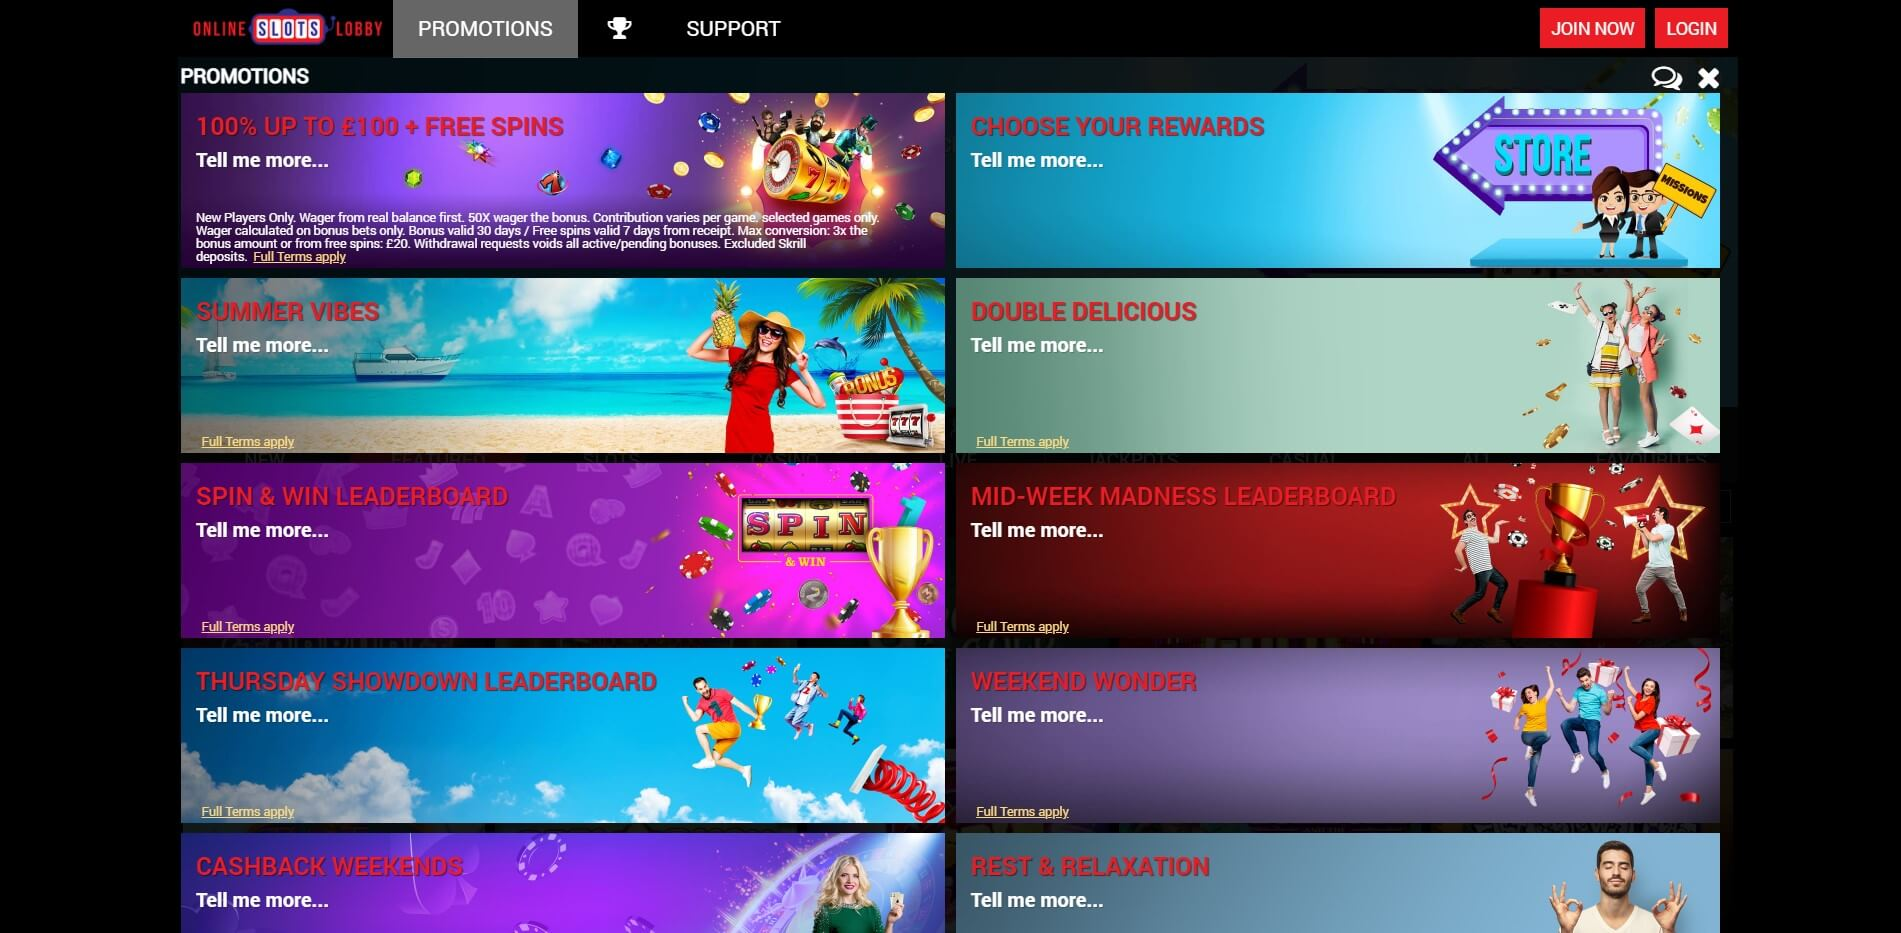 Promotions at OnlineSlotsLobby Casino